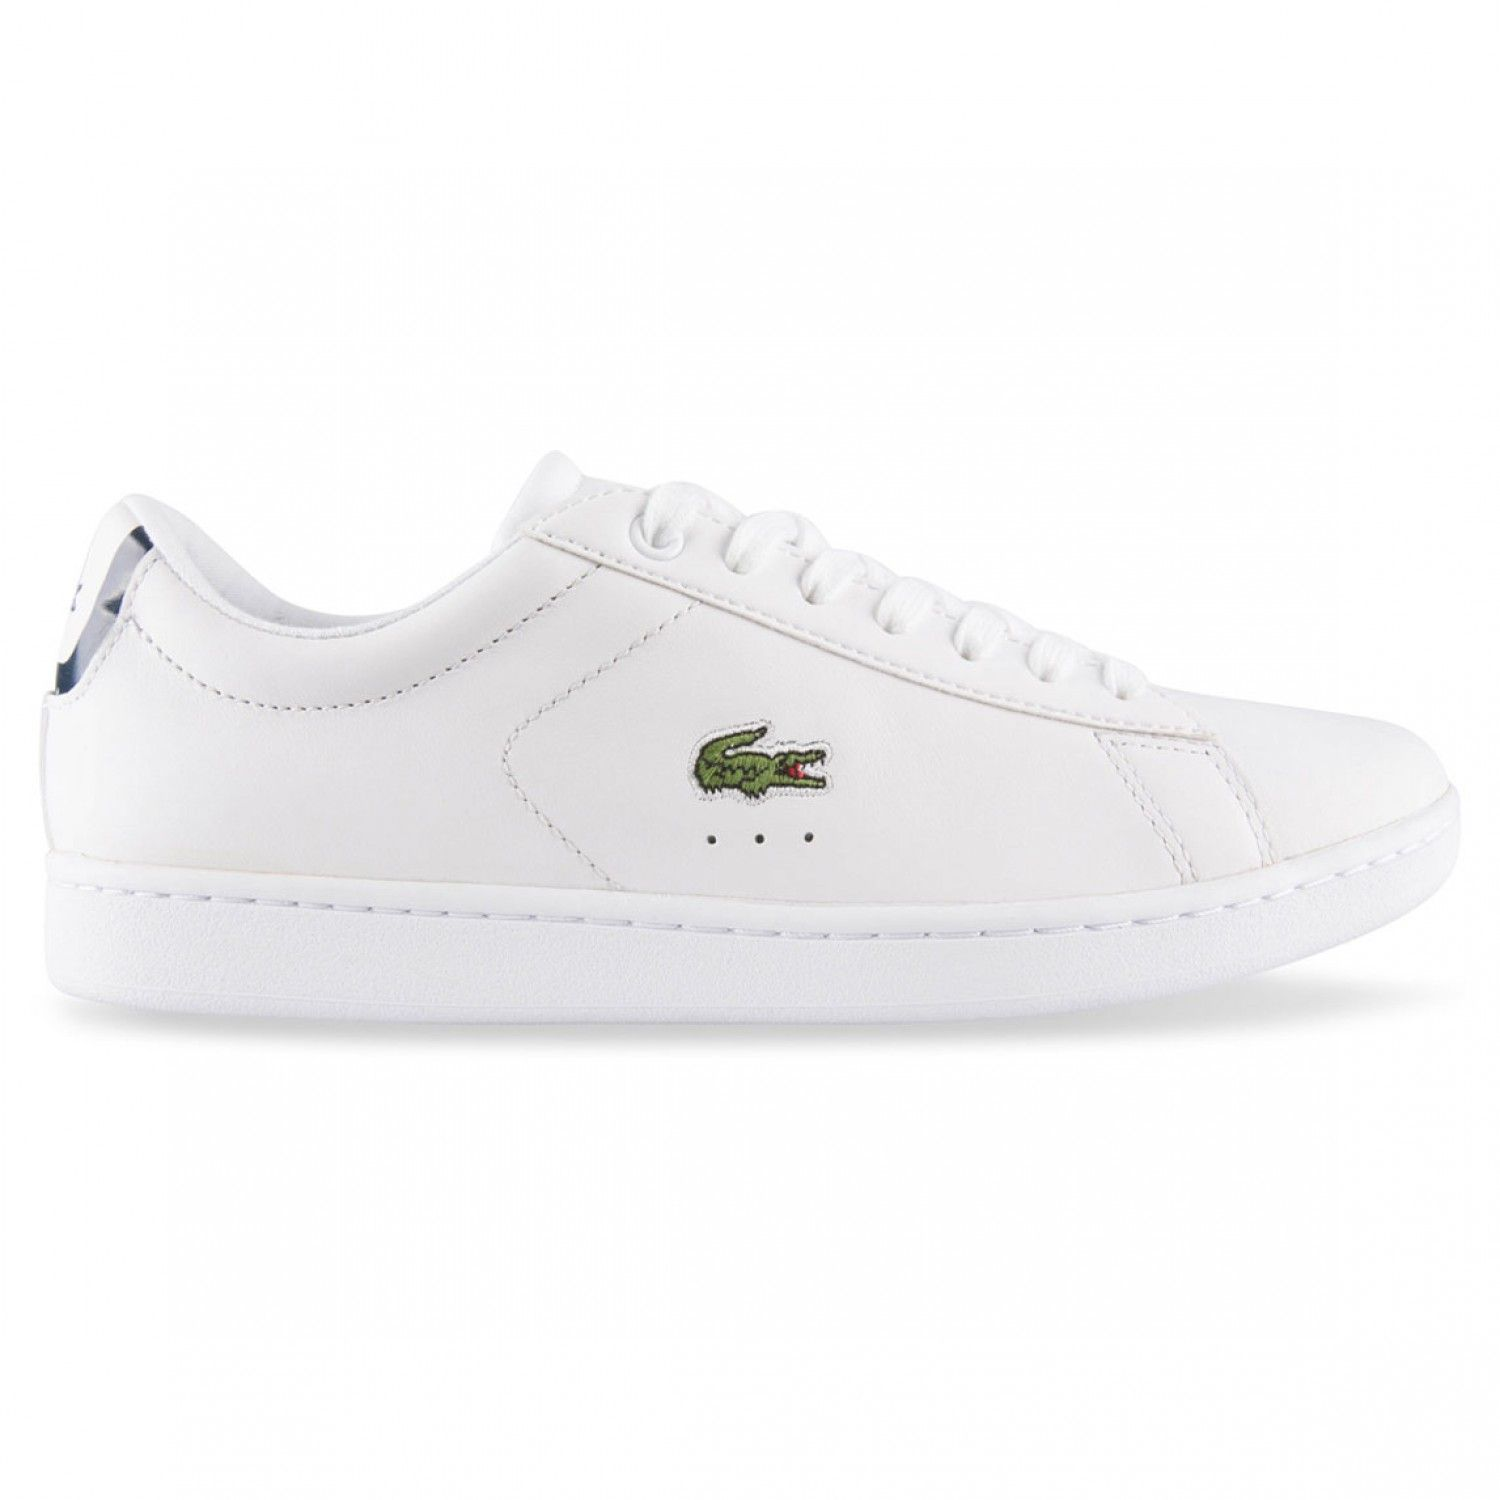 Carnaby Bl 1, Womens Low-Top Sneakers Lacoste